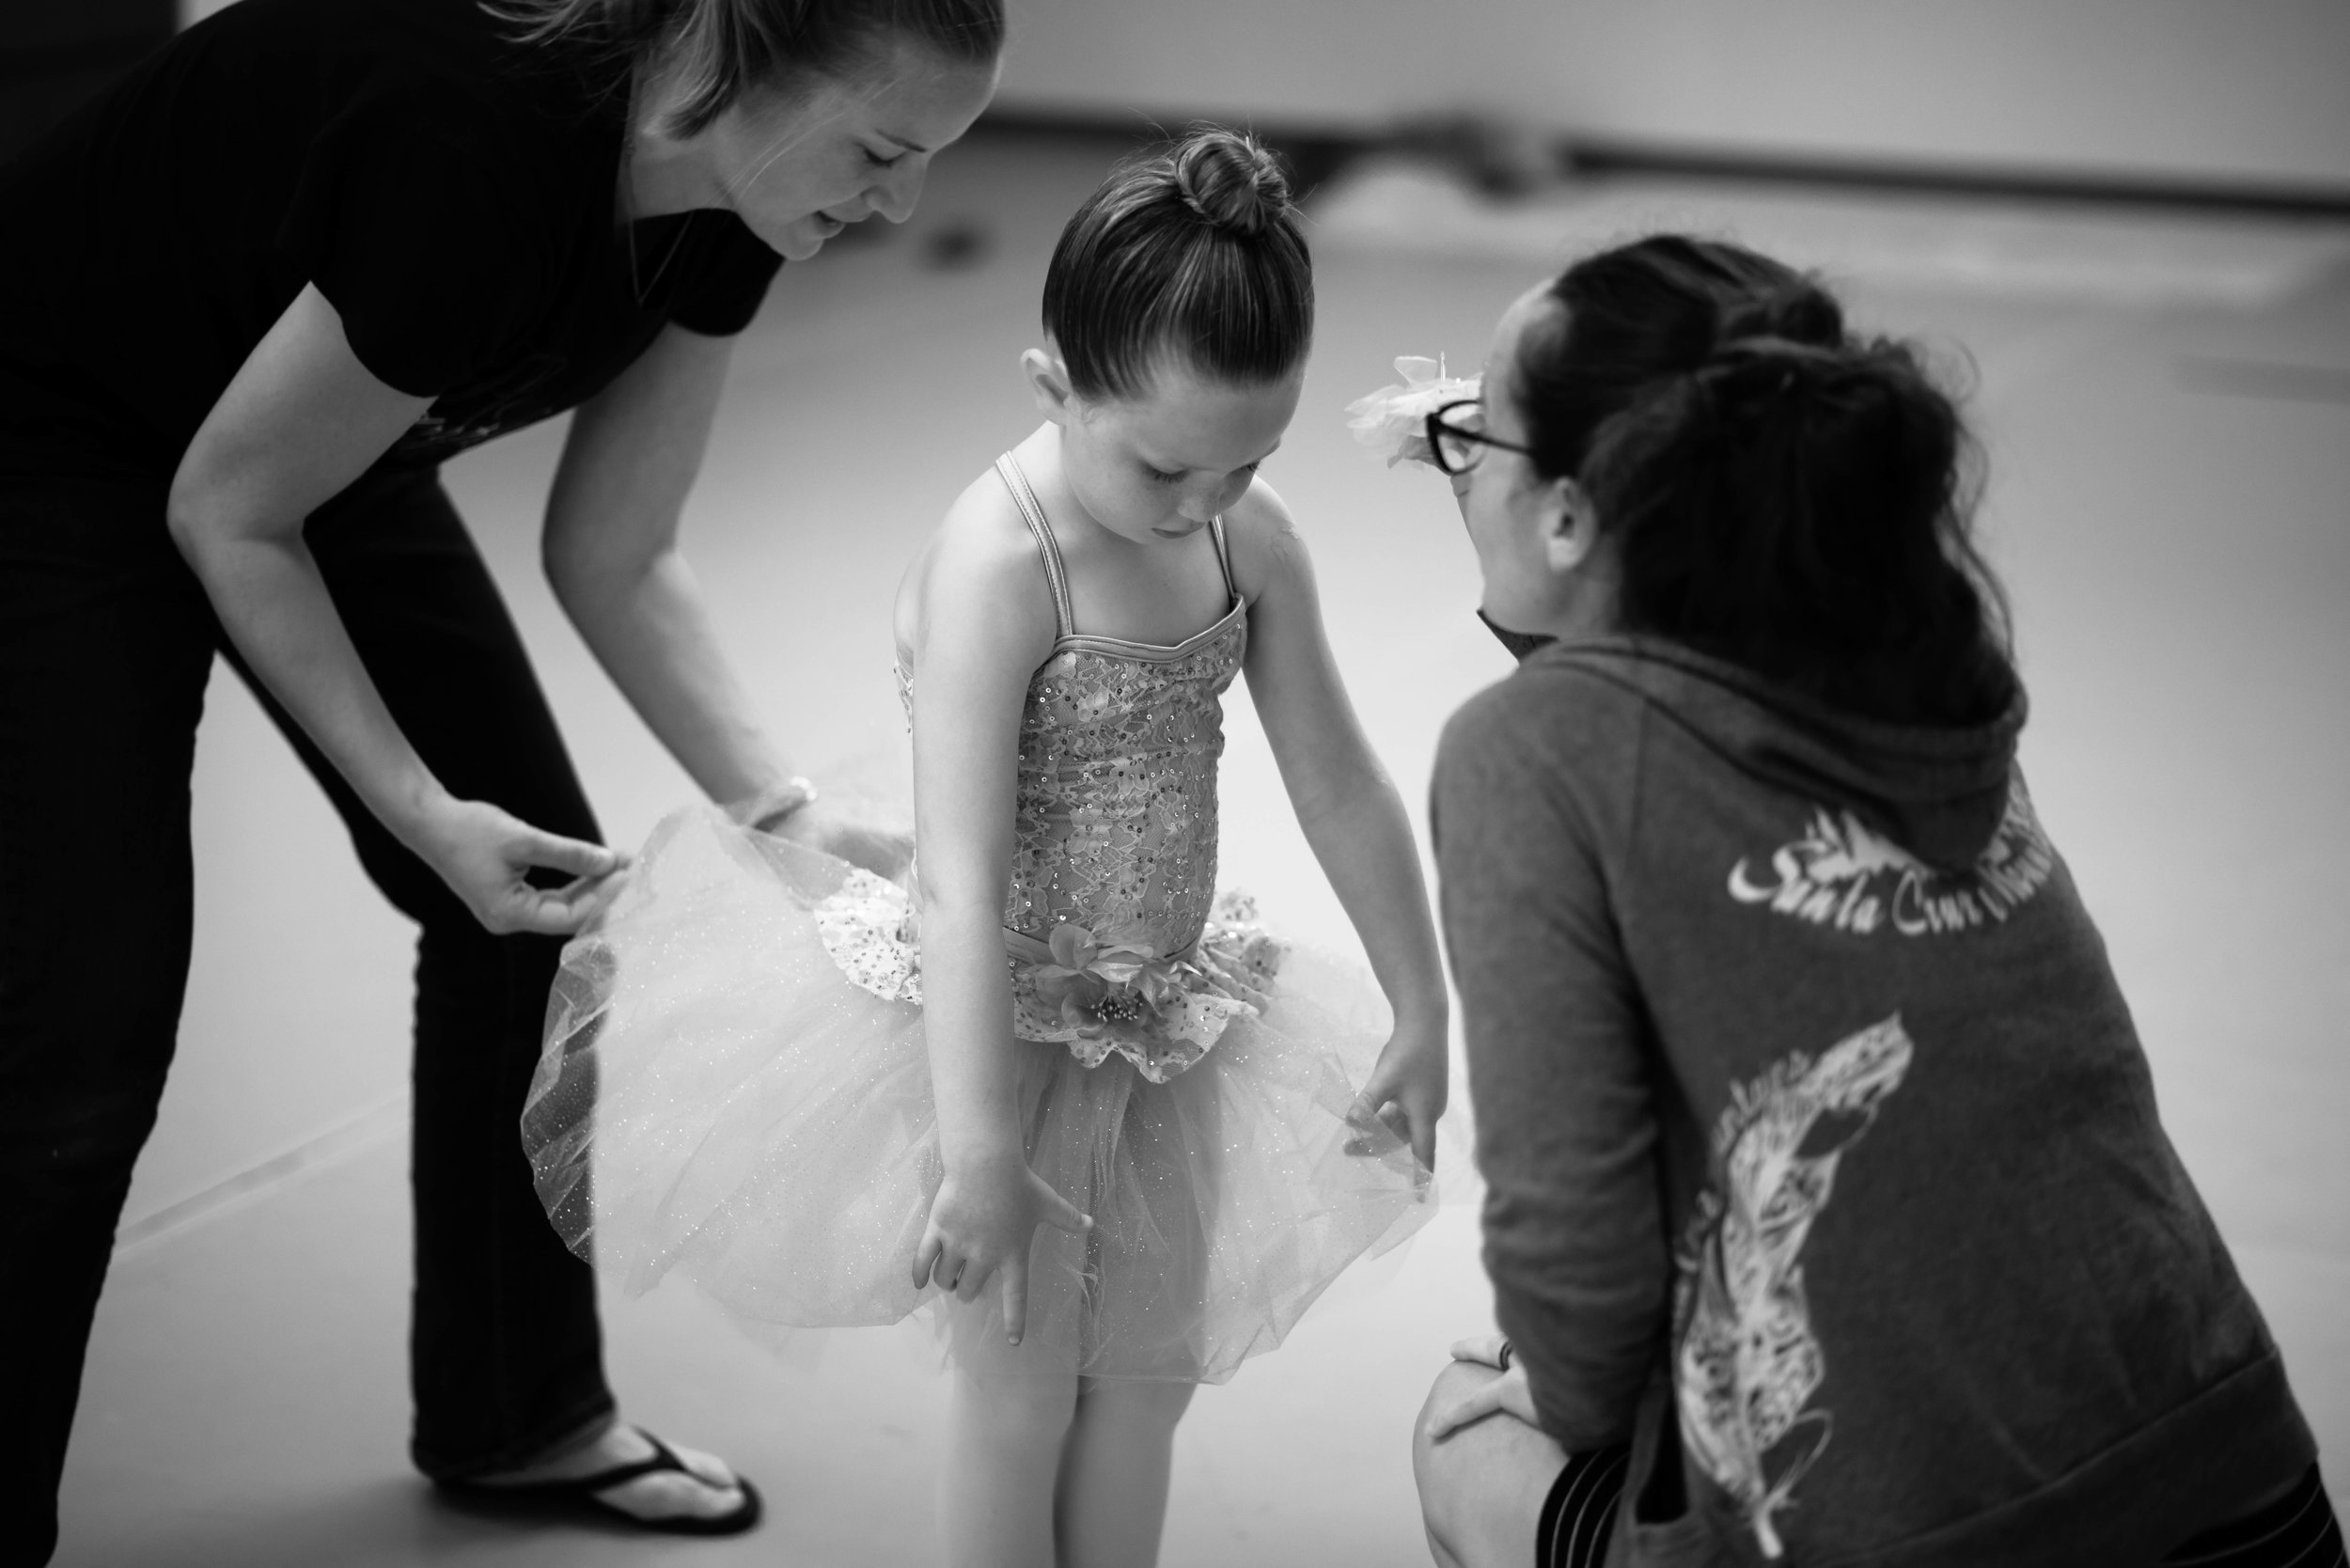 Petites 5, 6, 7 yrs - This class greatly builds on the ballet basics established in the former Petite level class. This class introduces a higher degree of technique preparing students for graduation into the graded levels in Agape Dance Academy.They will be introduced to barre work, light muscle building, and fun choreography and an opportunity for lead roles in our annual Petite Nutcracker.